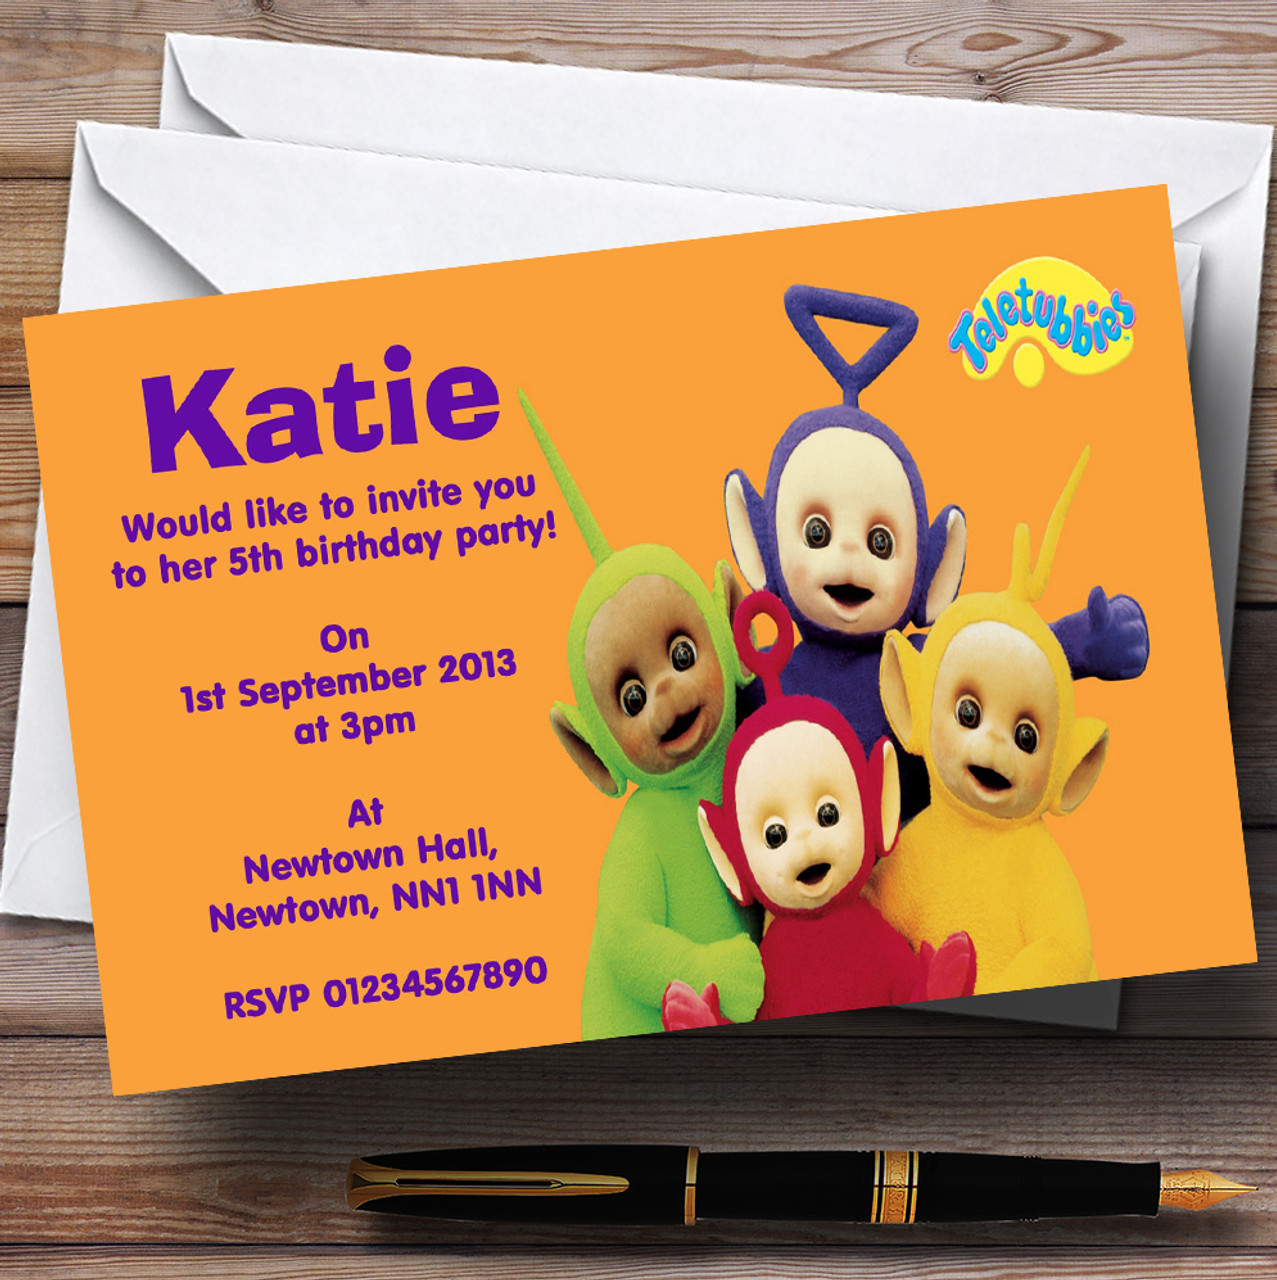 Personalised Party Invitations - Page 1 - The Card Zoo